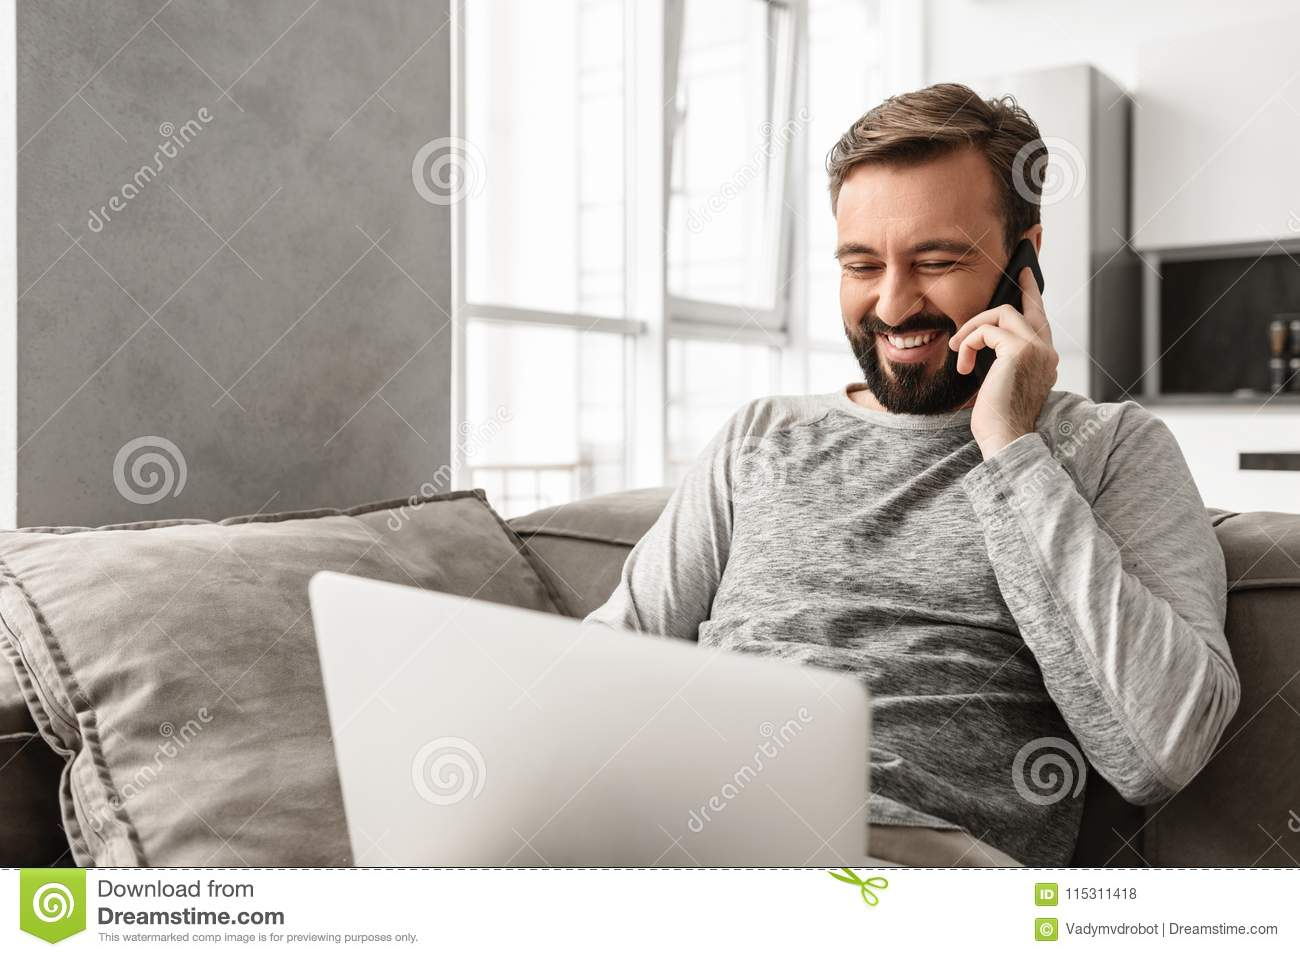 Image of positive man 30s in casual wear sitting on sofa in living room, while using laptop and speaking on cell phone